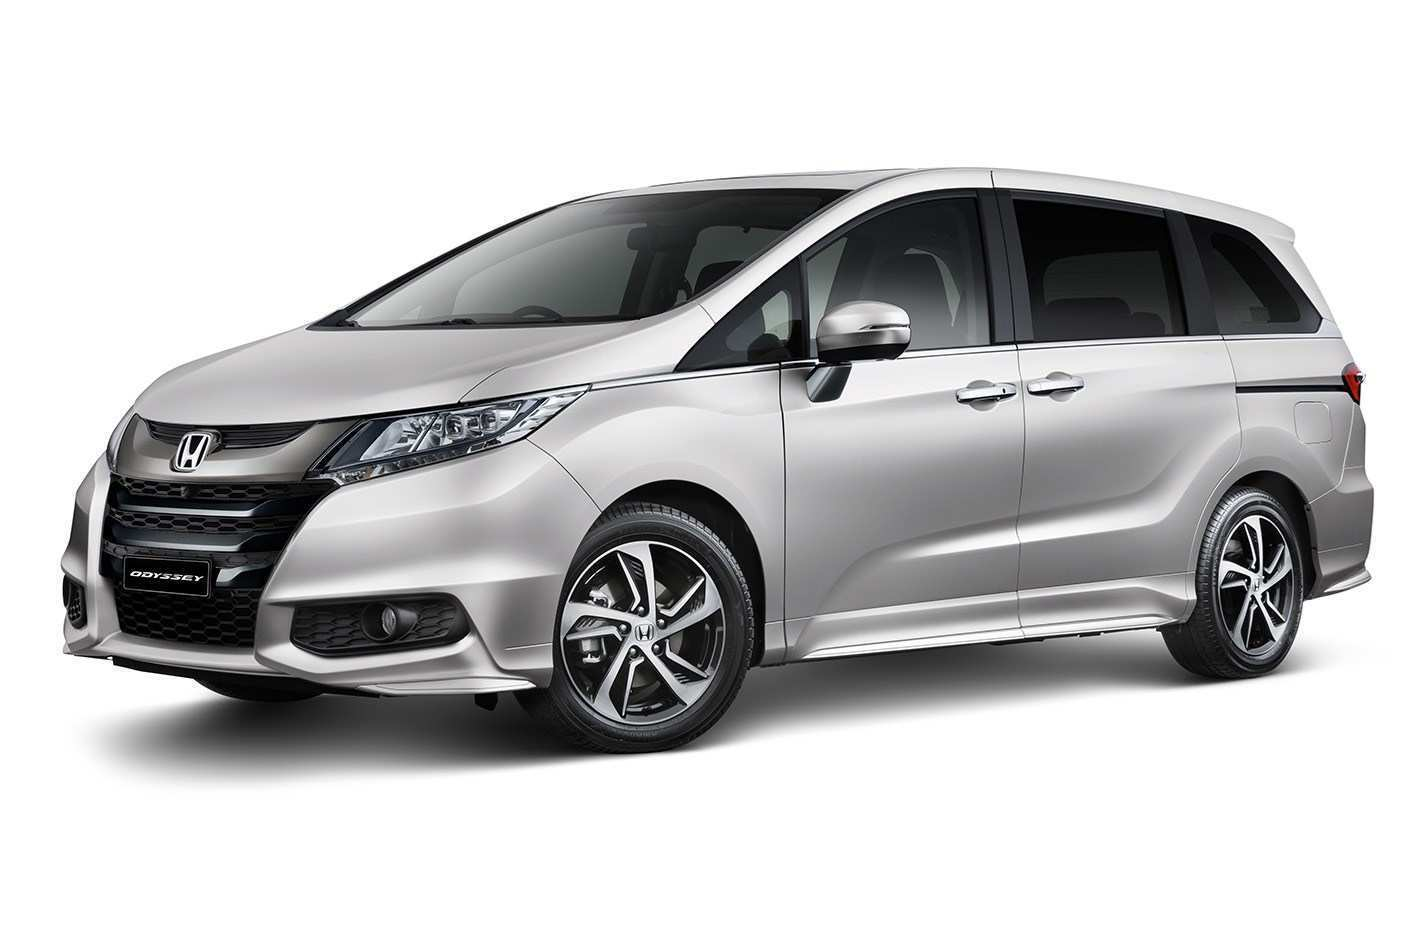 16 Concept of Honda Odyssey 2019 Australia Images with Honda Odyssey 2019 Australia